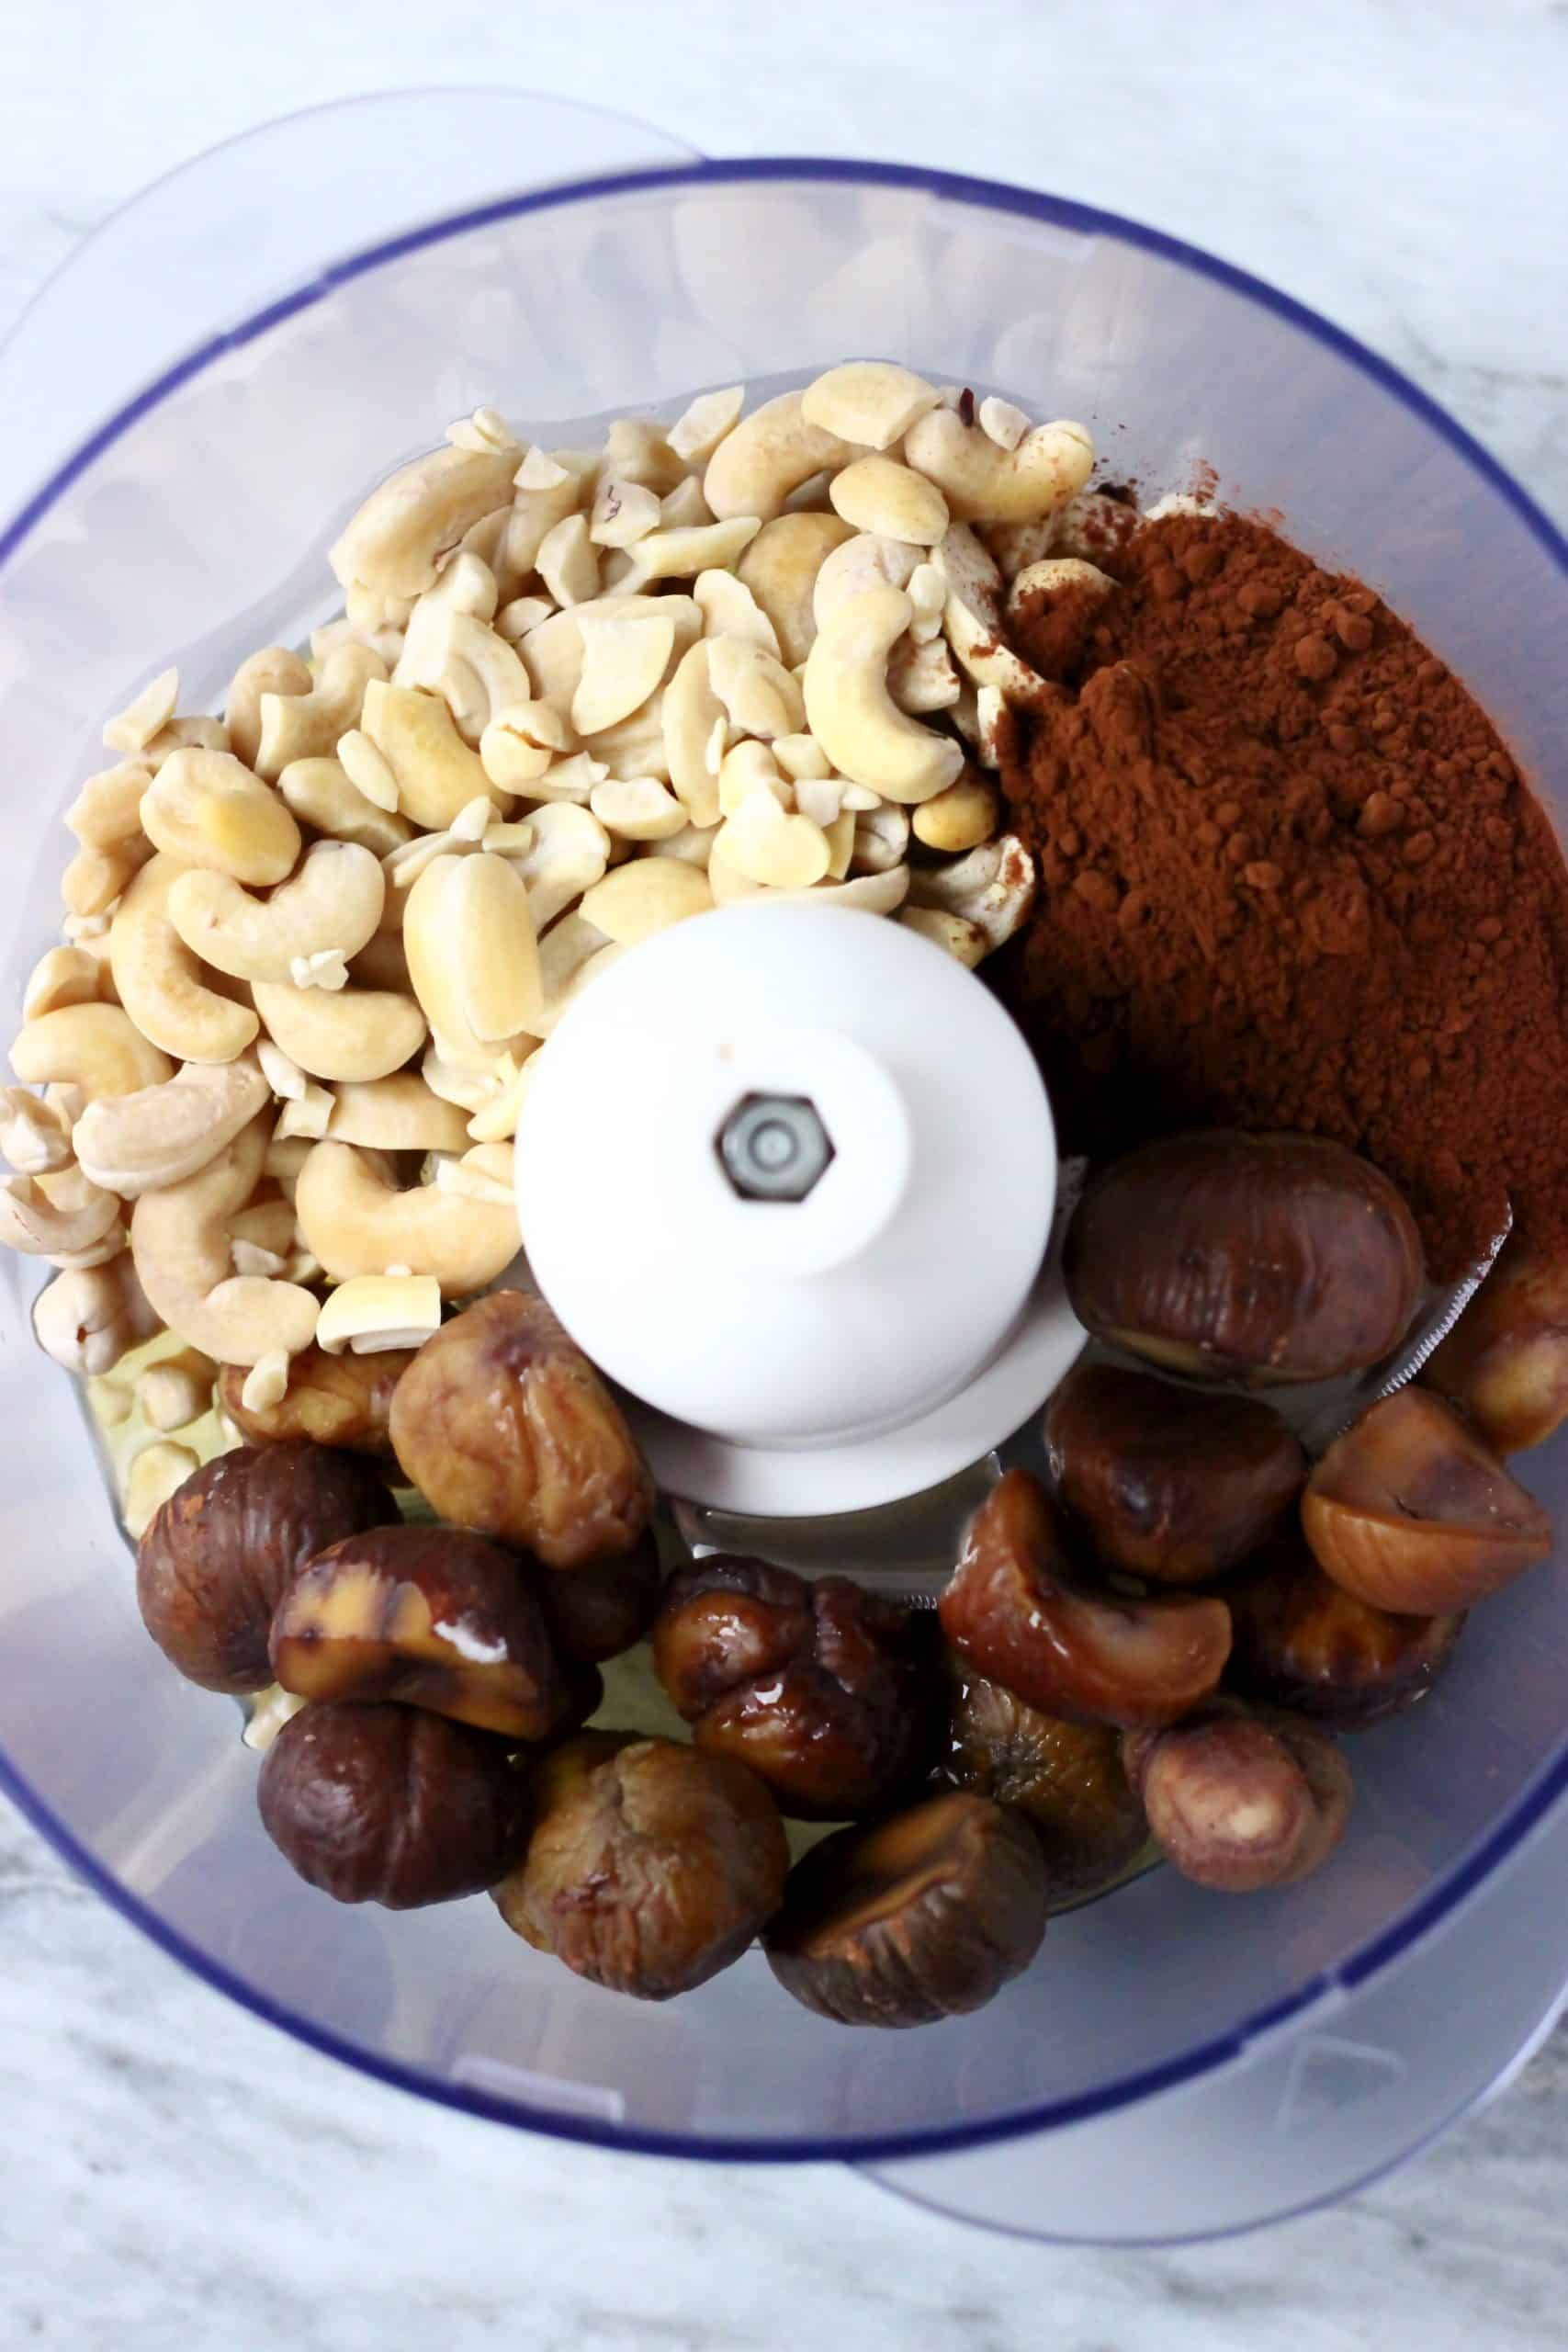 Cashews, cocoa powder and chestnuts in a food processor